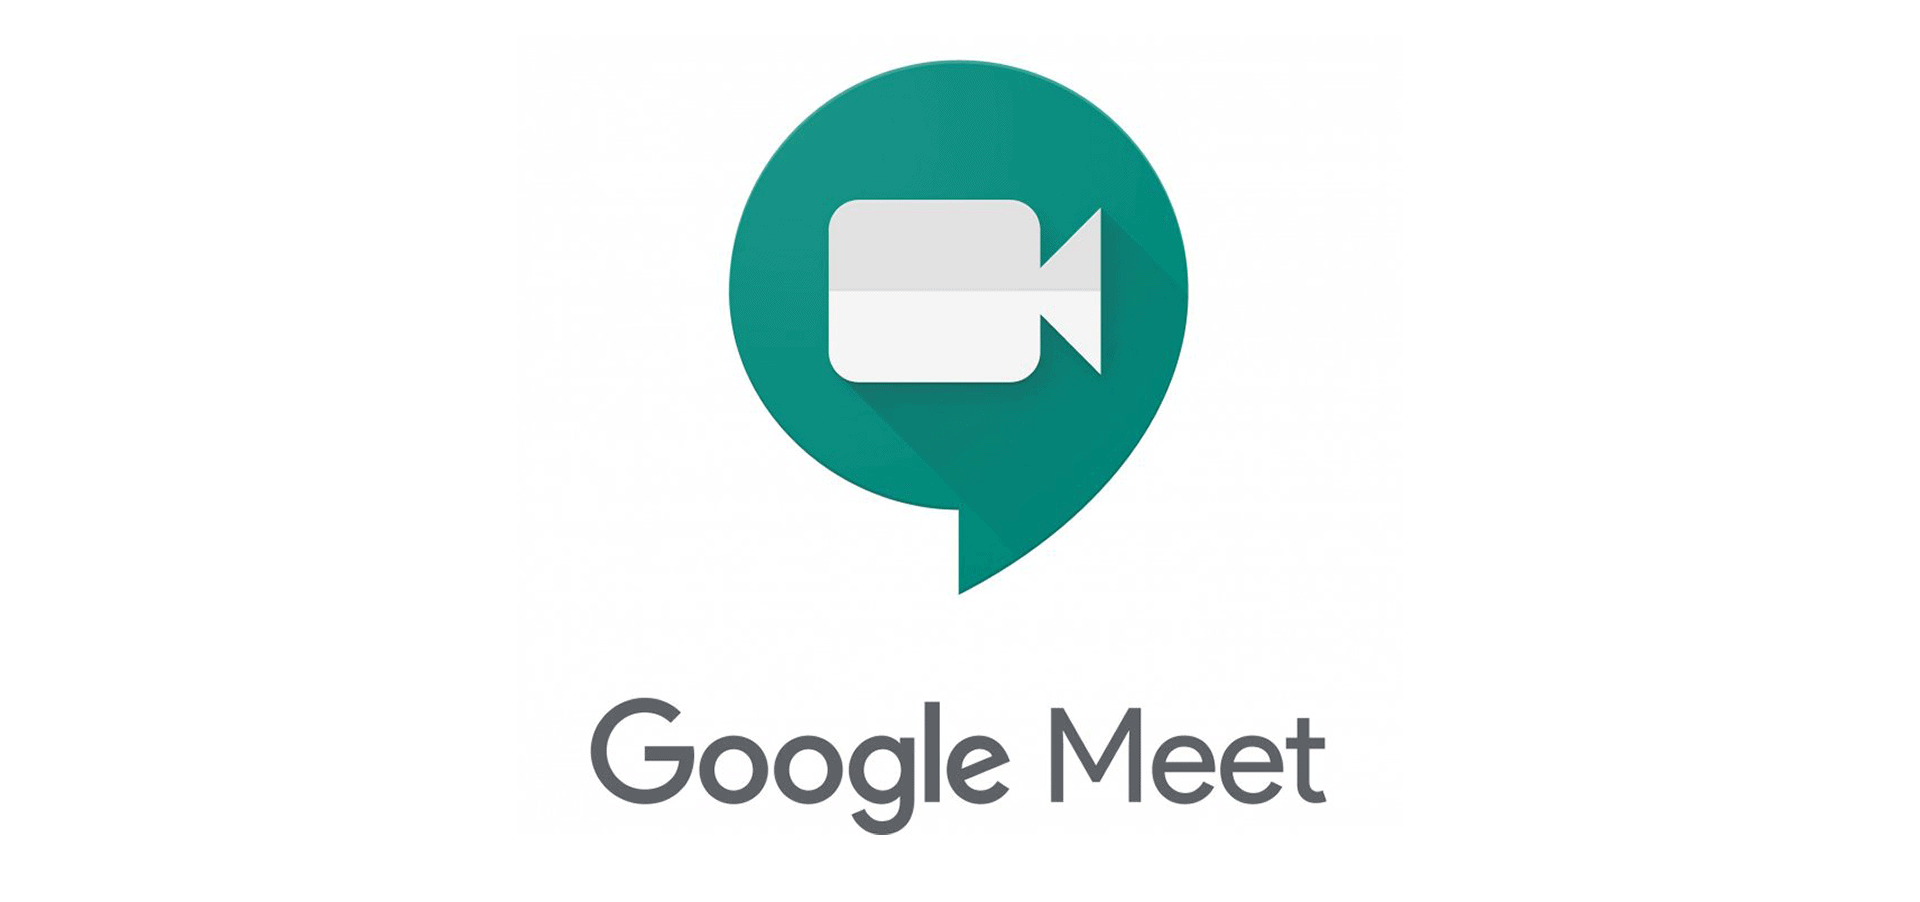 Video calling app 8- Google meet